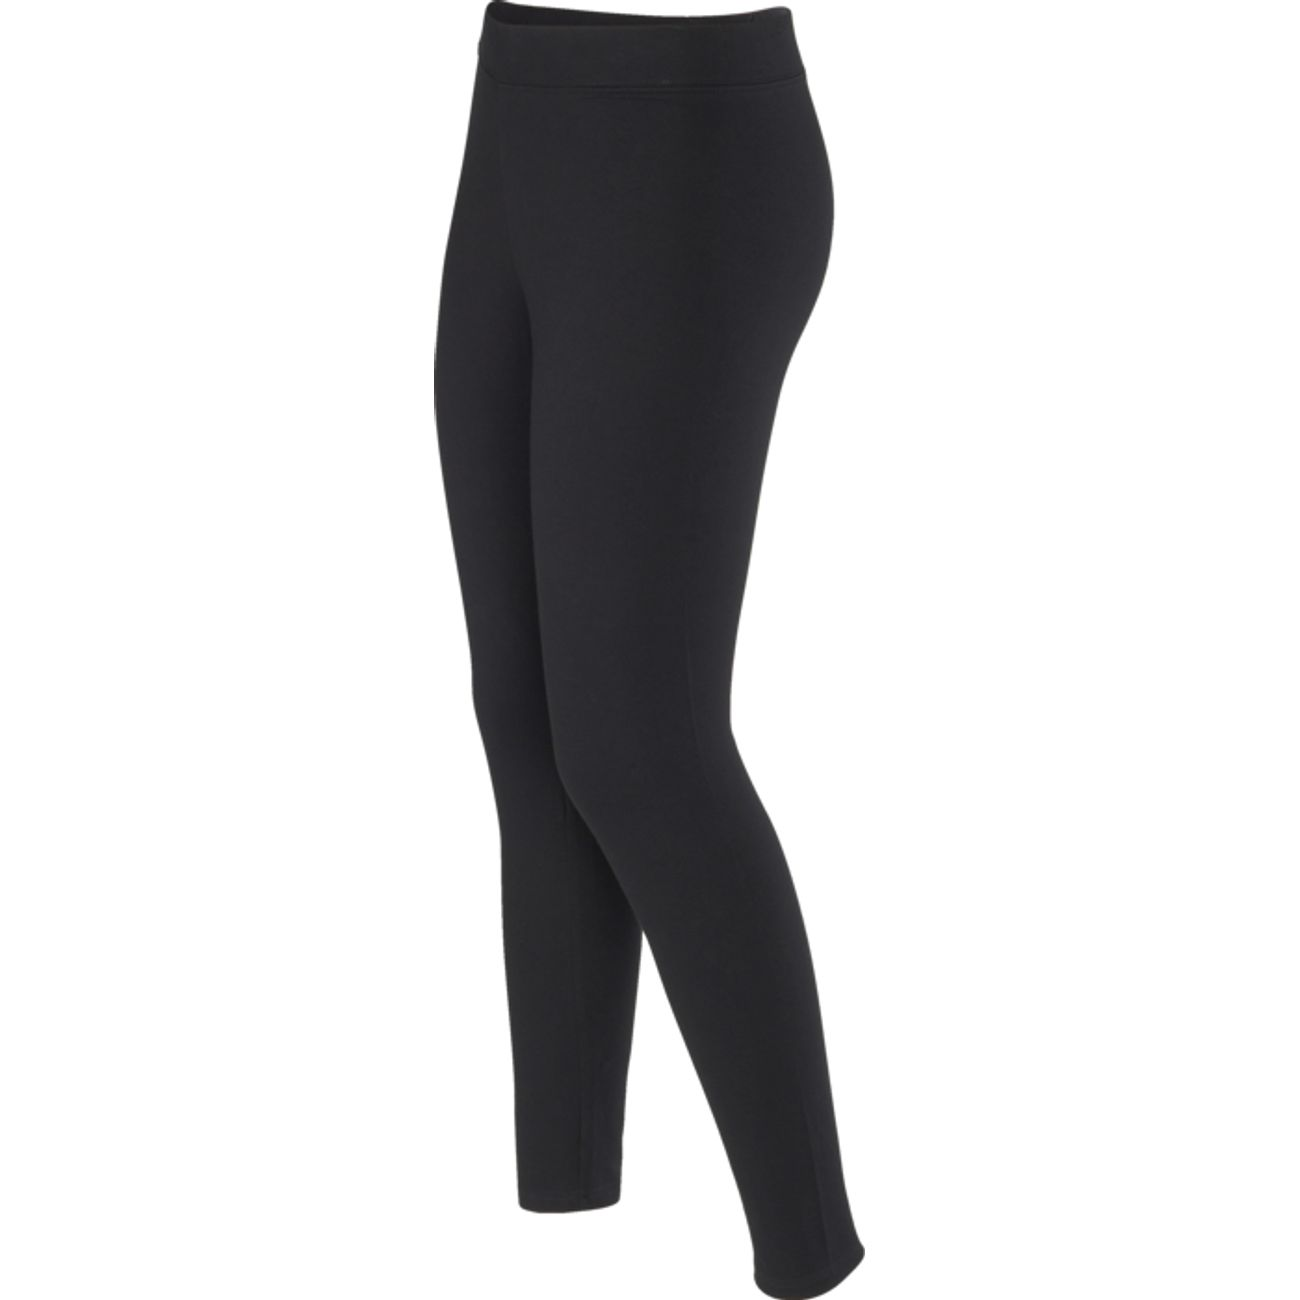 LEGGING Training femme SOFTWR UNI LEGGING LONG COLLANT, NOIR